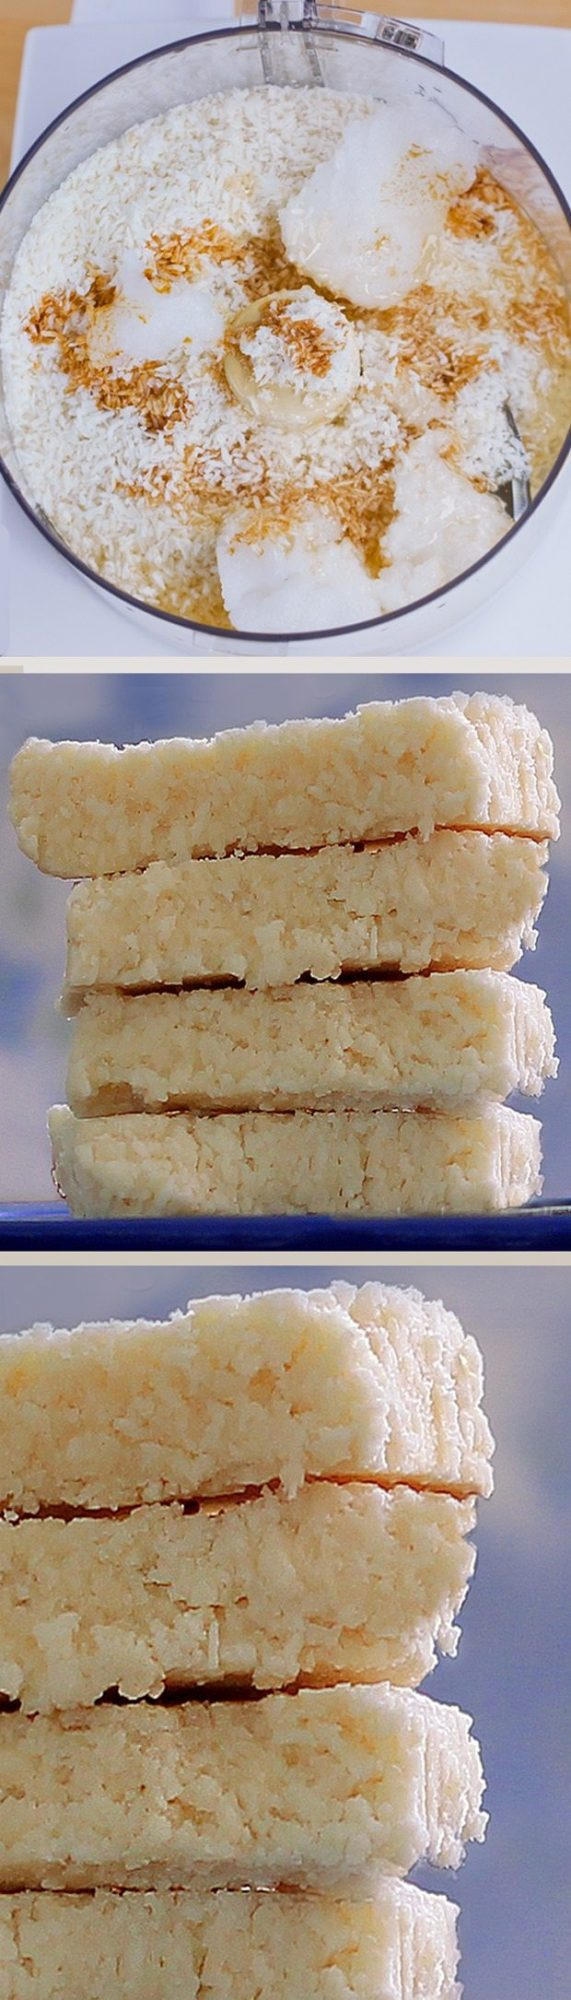 COCONUT CRACK BARS - 1 cup shredded coconut, 1/2 tsp vanilla extract, 1/8 tsp salt, 1/4 cup... Full recipe: http://chocolatecoveredkatie.com/2012/08/30/no-bake-coconut-crack-bars/ @choccoveredkt